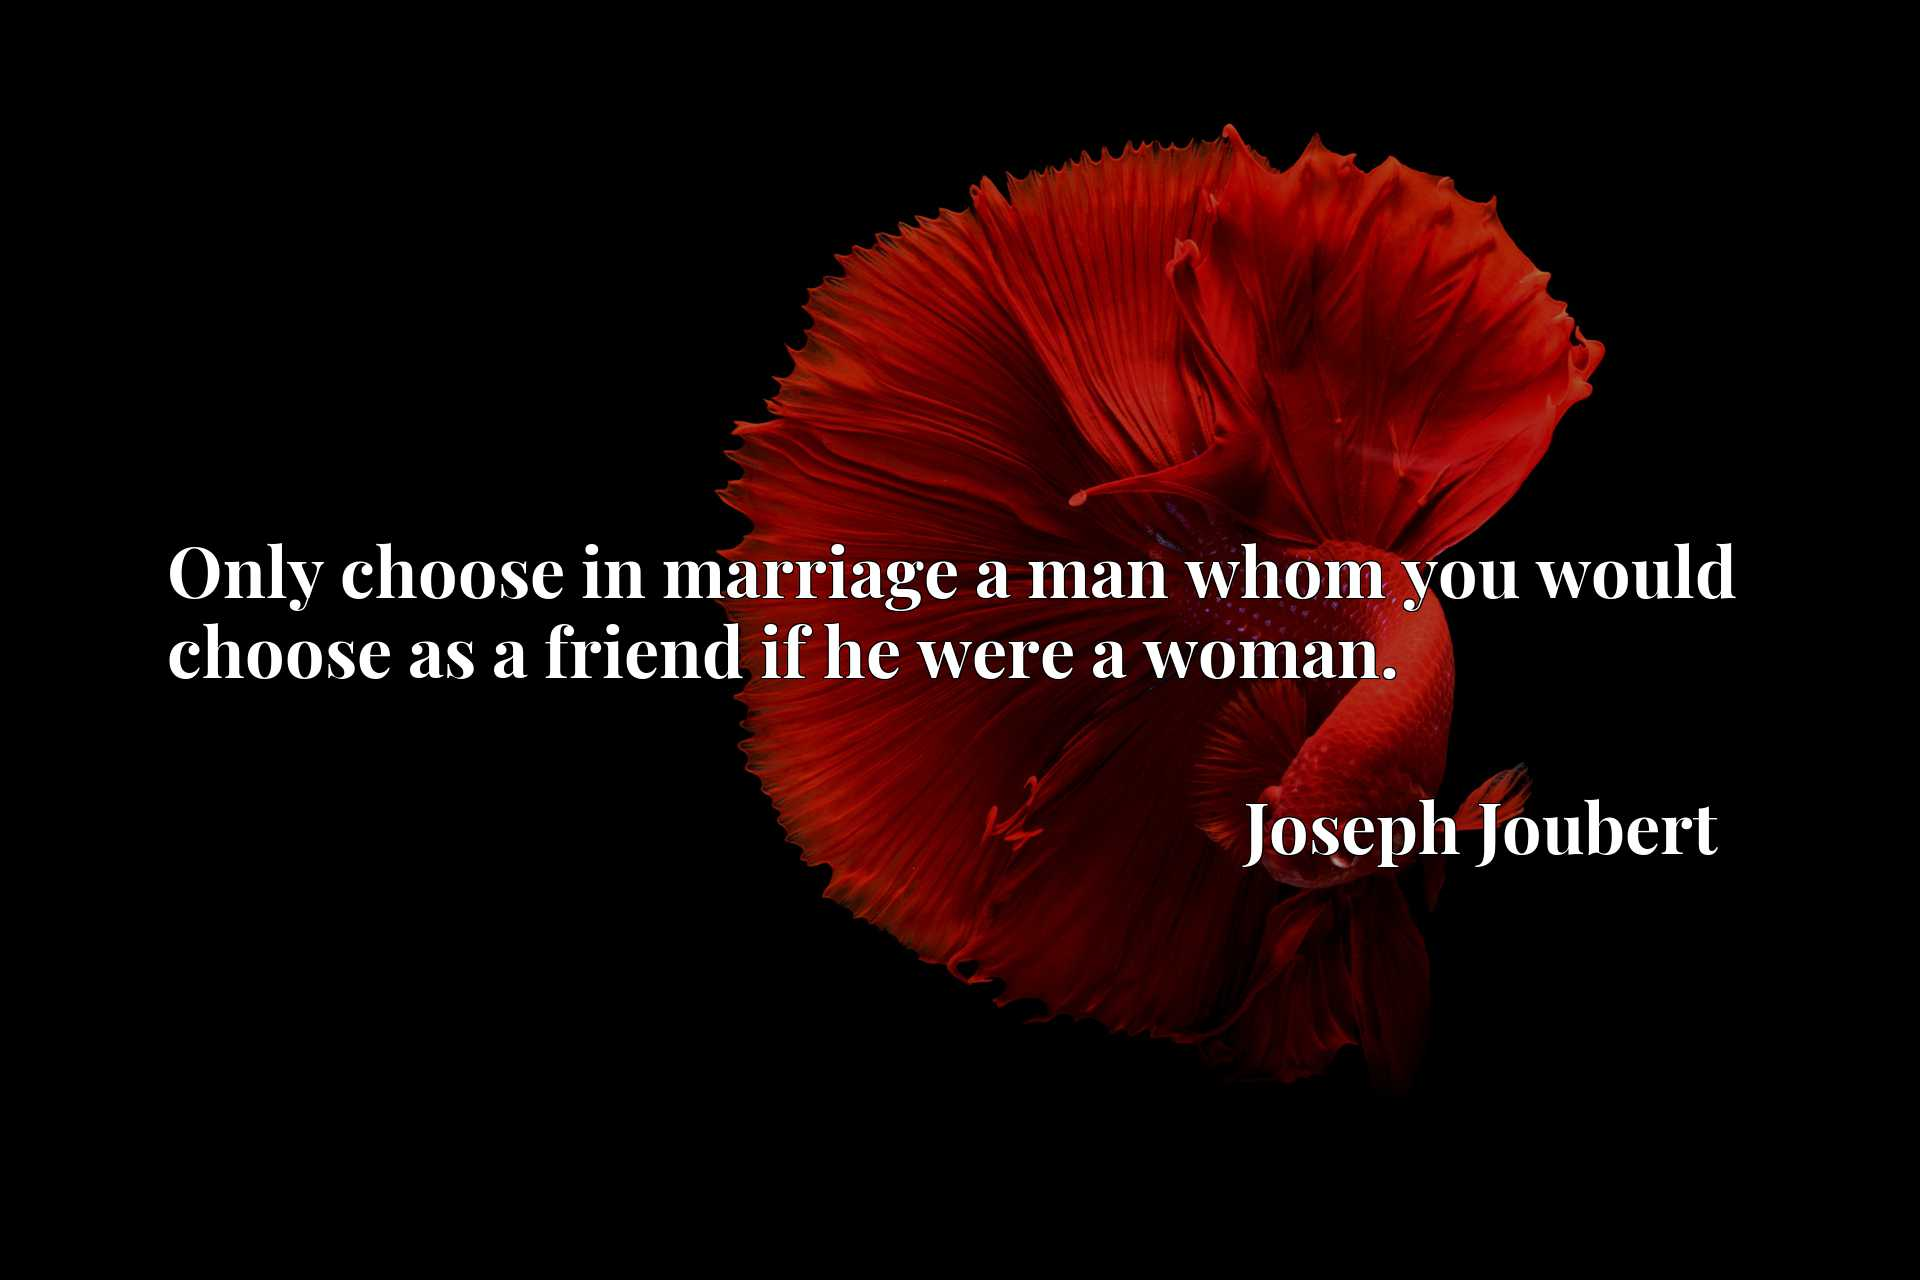 Quote Picture :Only choose in marriage a man whom you would choose as a friend if he were a woman.